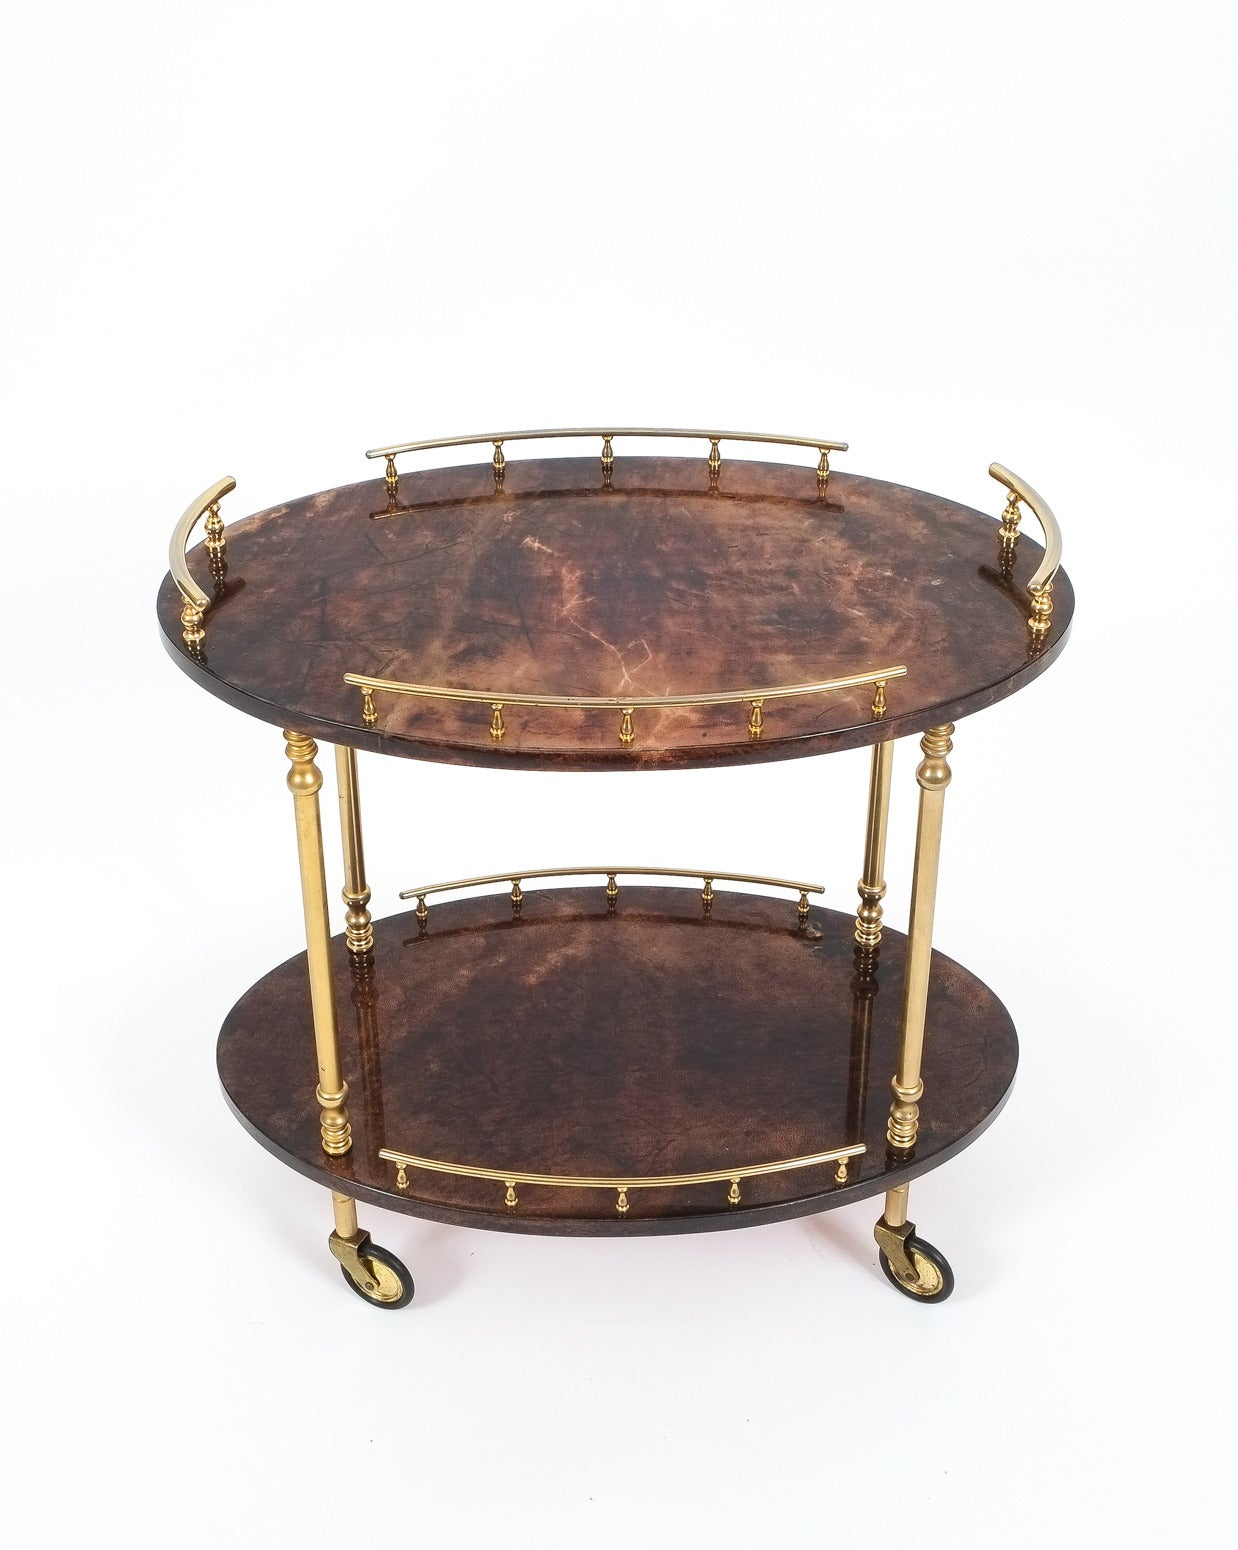 Aldo Tura Petite Bar Cart or Side Table at 1stdibs